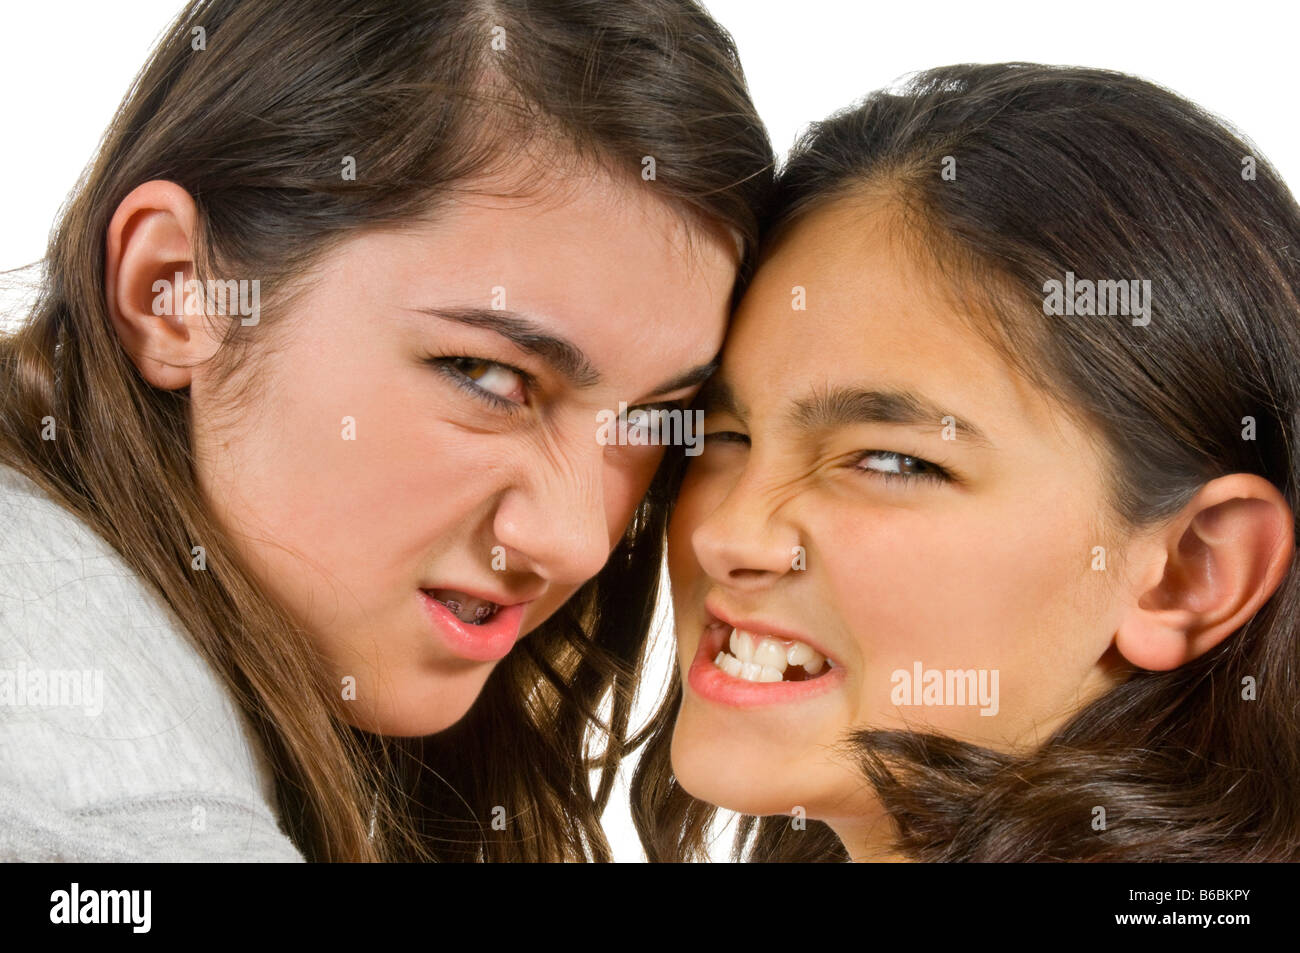 Horizontal close up portrait of two teenage sisters snarling menacingly during a fight against a white background - Stock Image